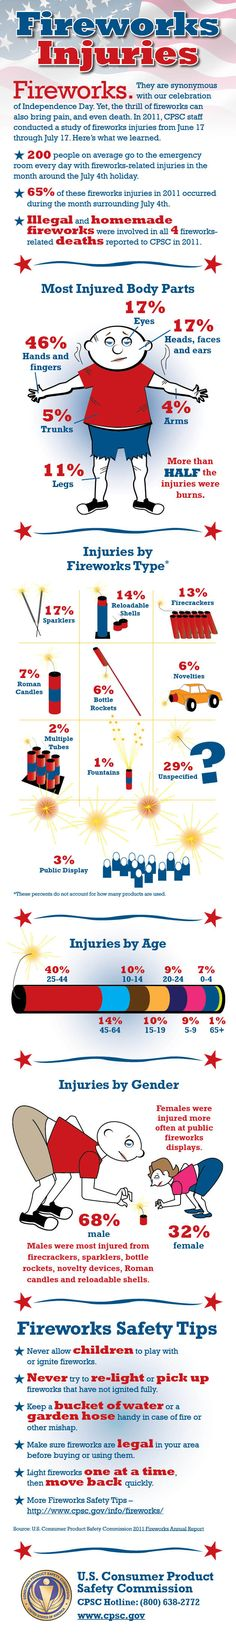 Fireworks Injuries infographic: Be safe while you celebrate the USA! #fireworks #safety #infographic